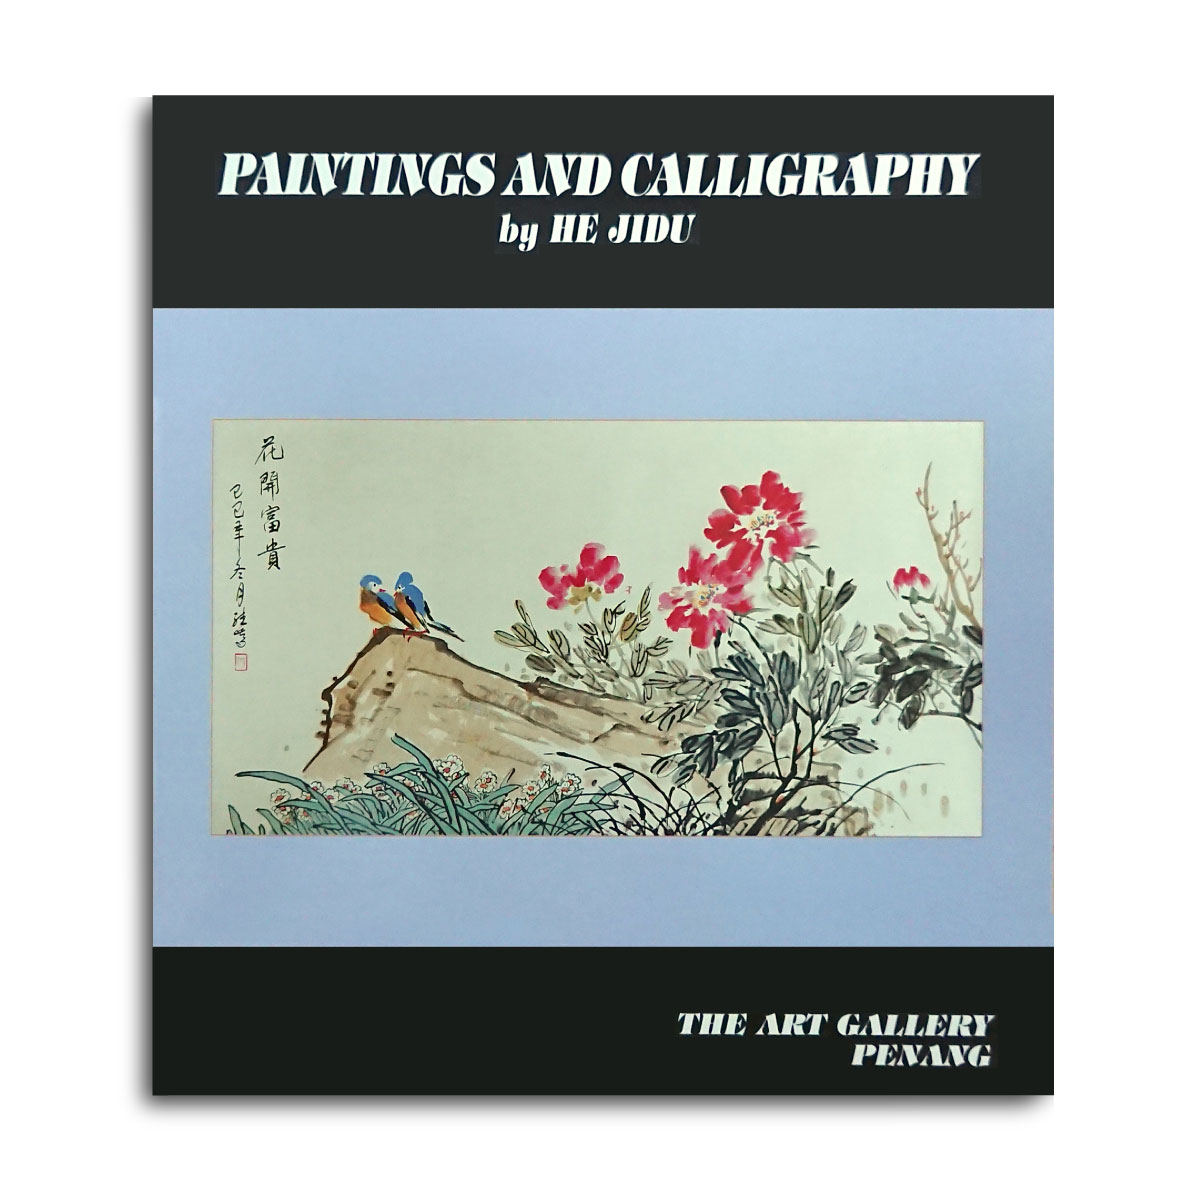 Paintings and Calligraphy by He Jidu